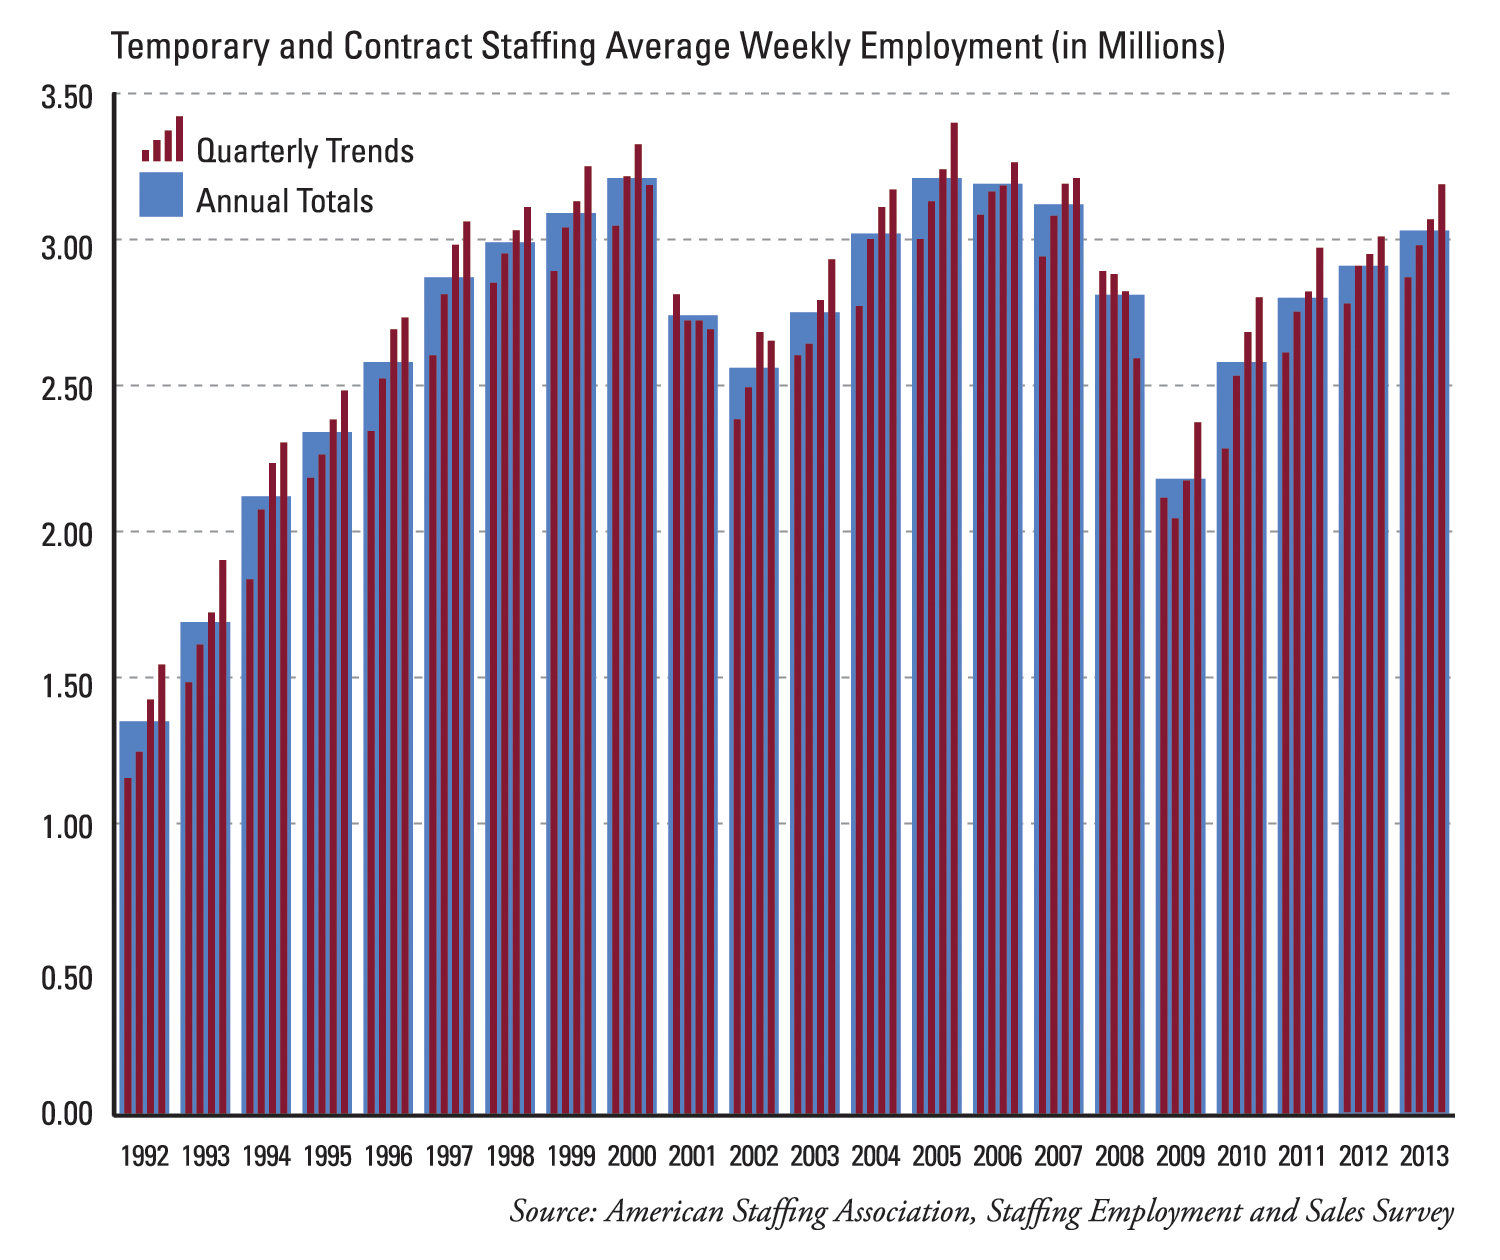 Temporary and Contract Staffing Average Weekly Employment